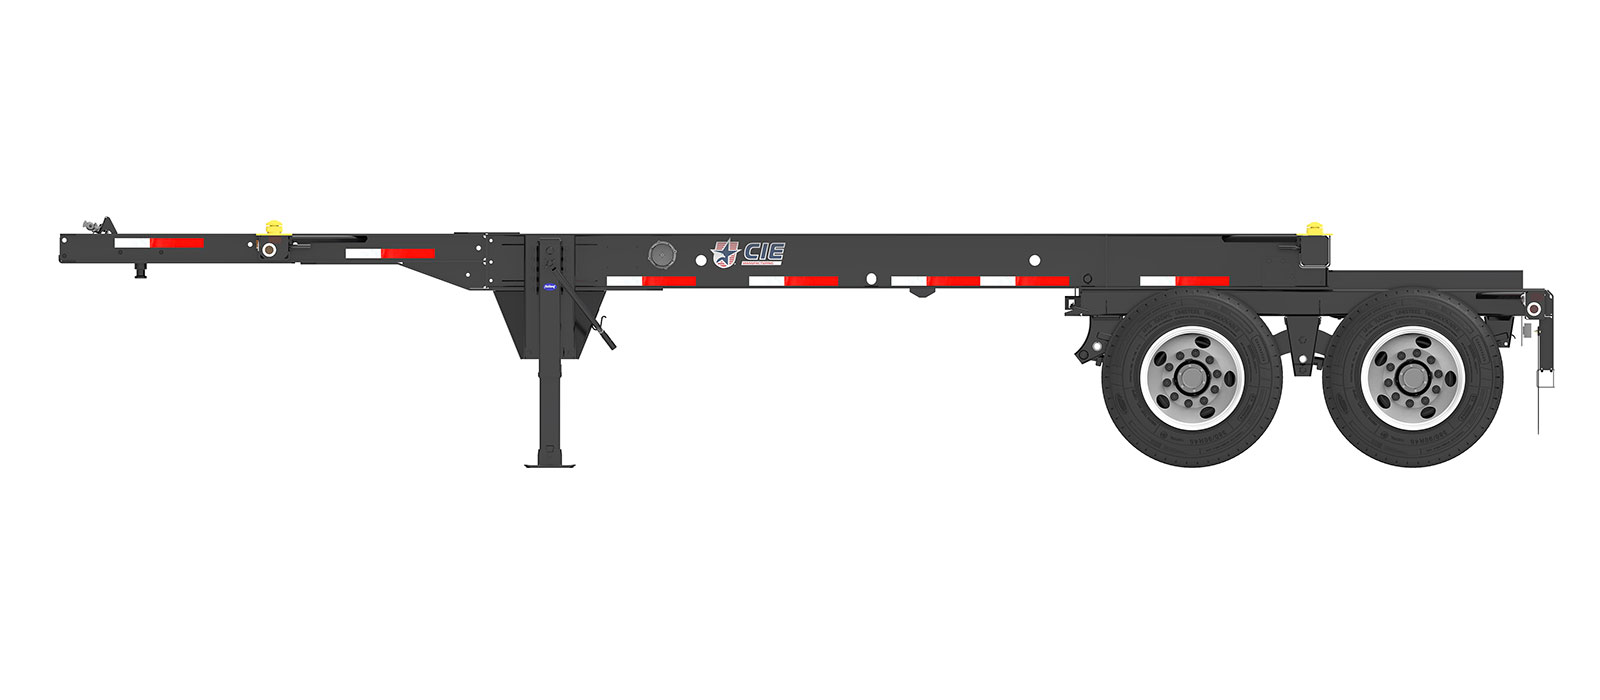 23.5' Tandem Slider Container Chassis Orthographic Side View Final